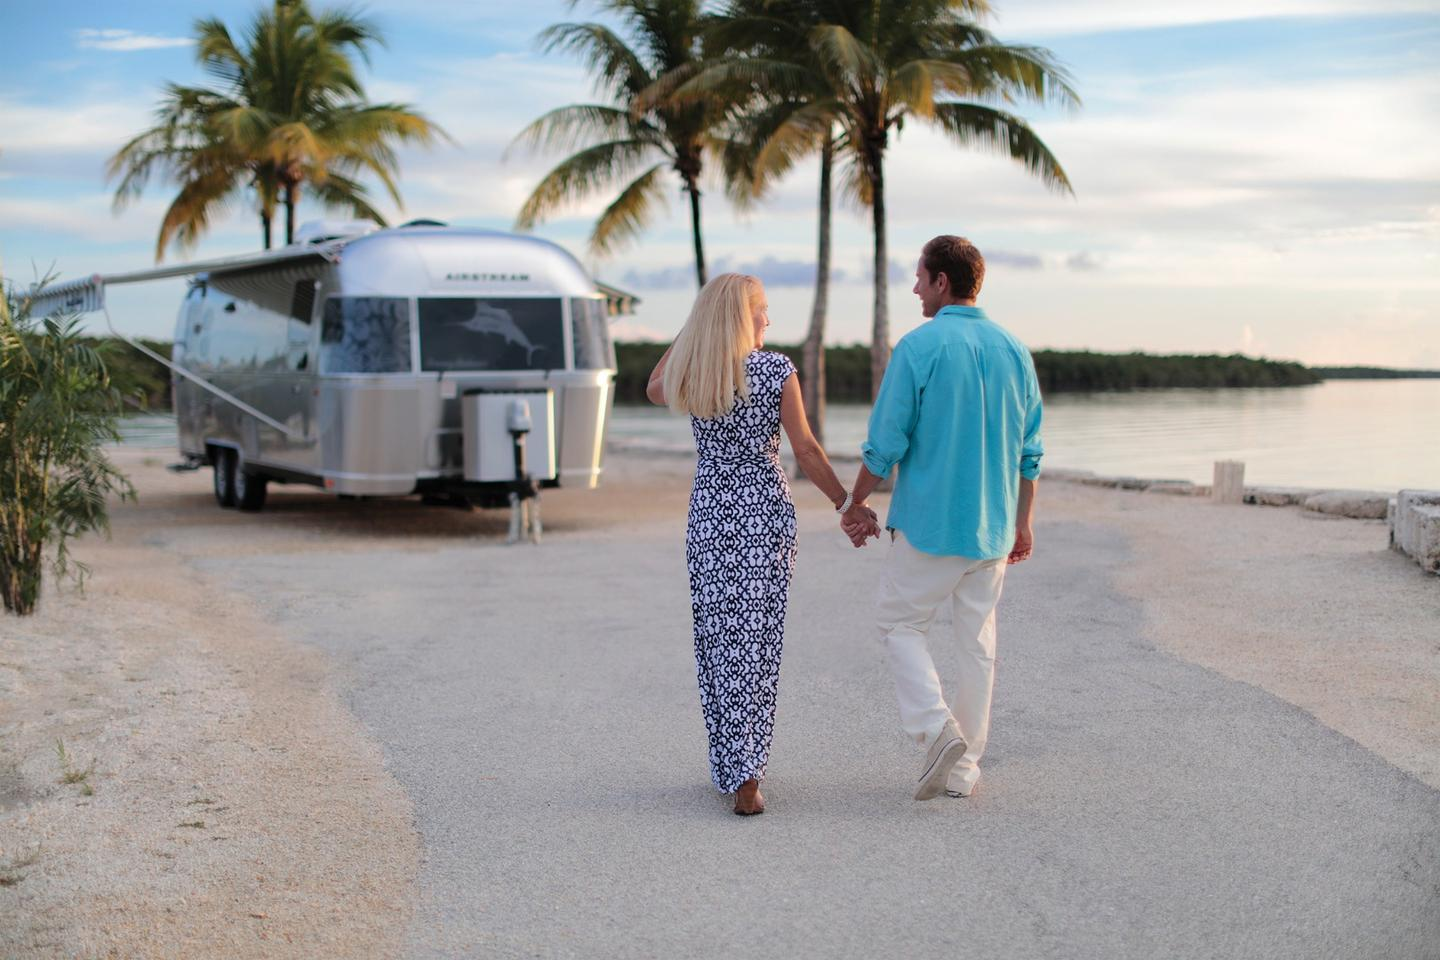 Whether or not you're road tripping down the coast, the Airstream Tommy Bahama Special Edition trailer offers a well-equipped, relaxing place to stay